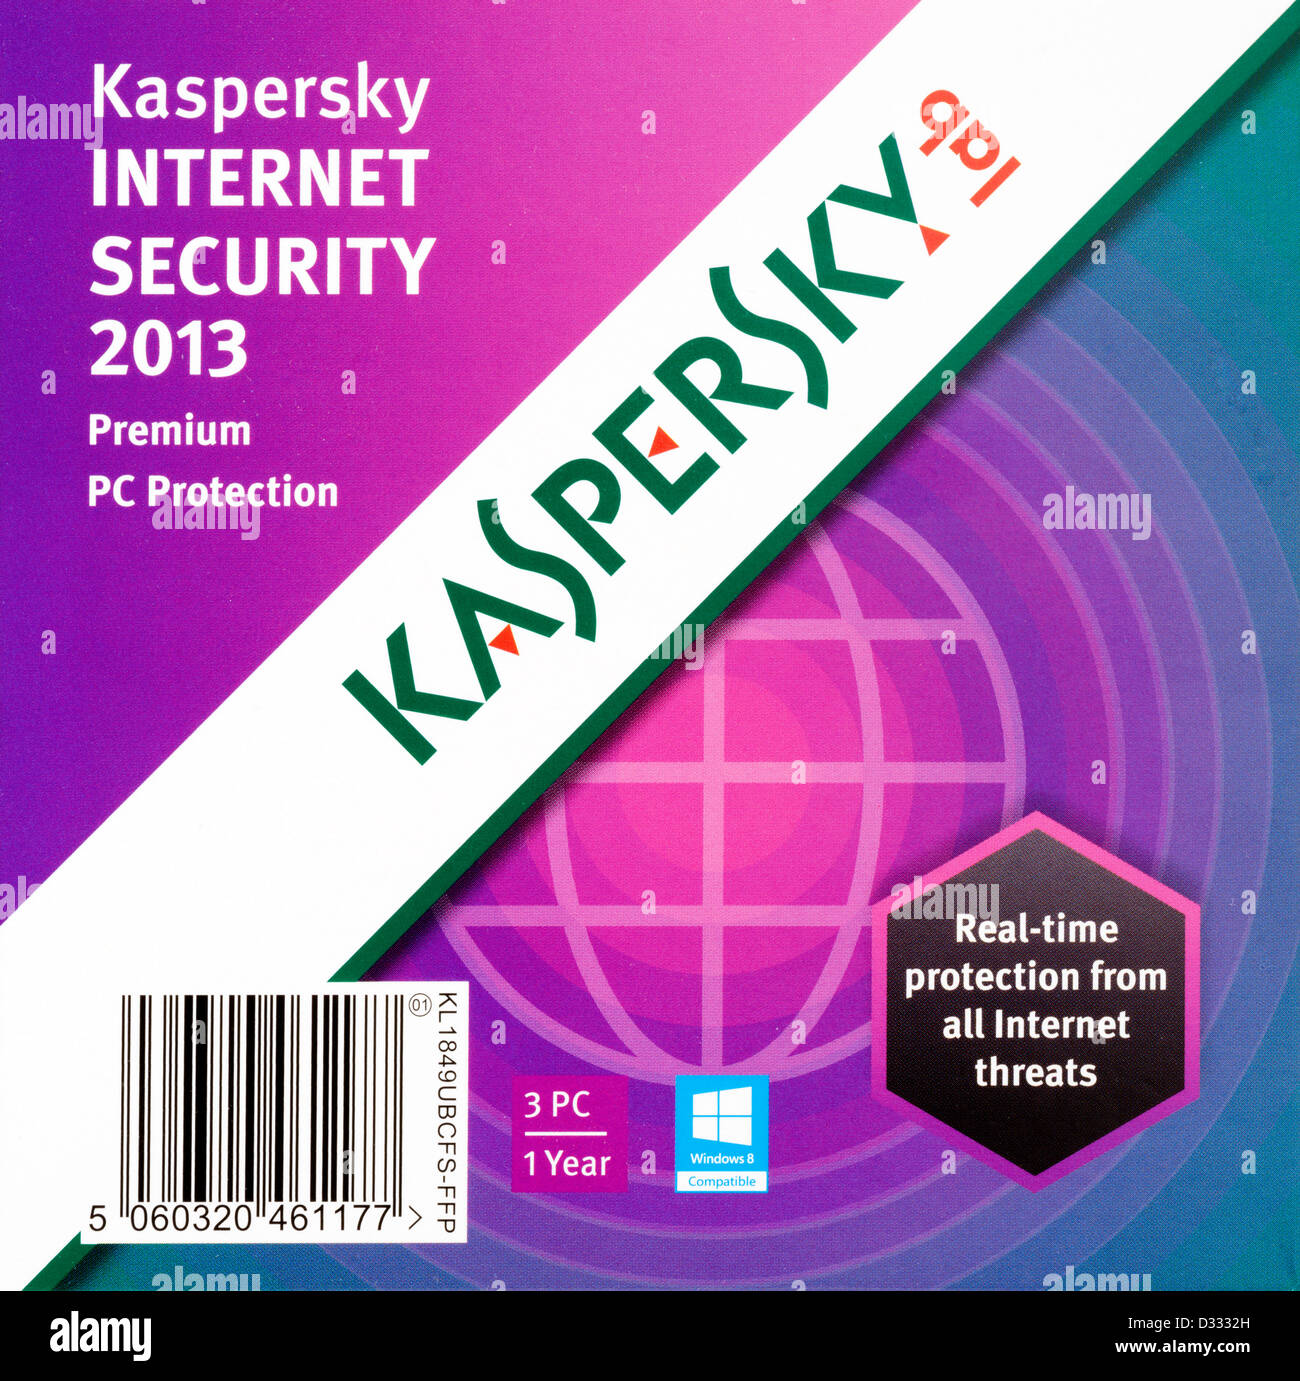 Kaspersky Internet Security 2013 logiciel anti virus Photo Stock